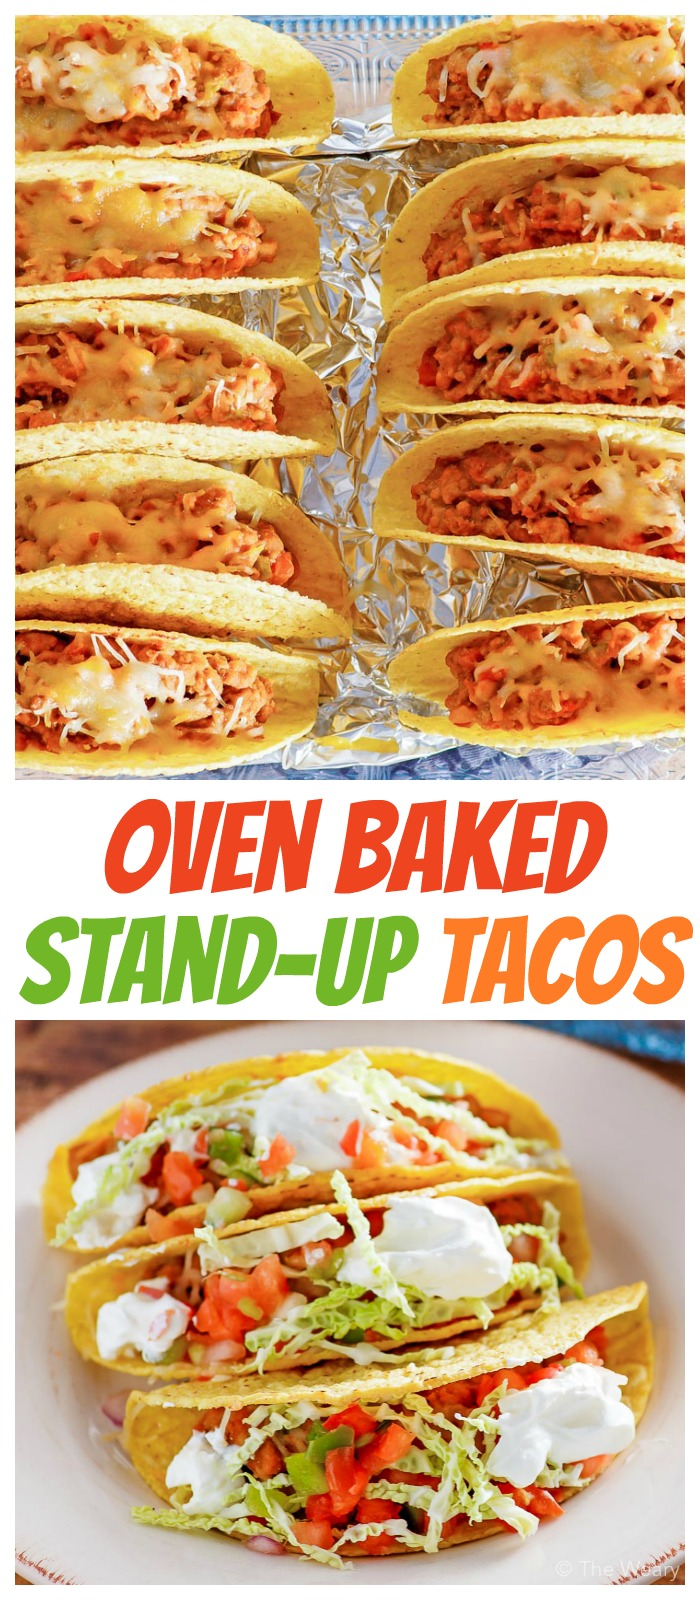 These oven baked tacos are my new favorite way to enjoy this classic dinner! Bake up a pan for your family this week, and enjoy a fun meal together. #tacos #taconight #tacotuesday #oventacos #bakedtacos